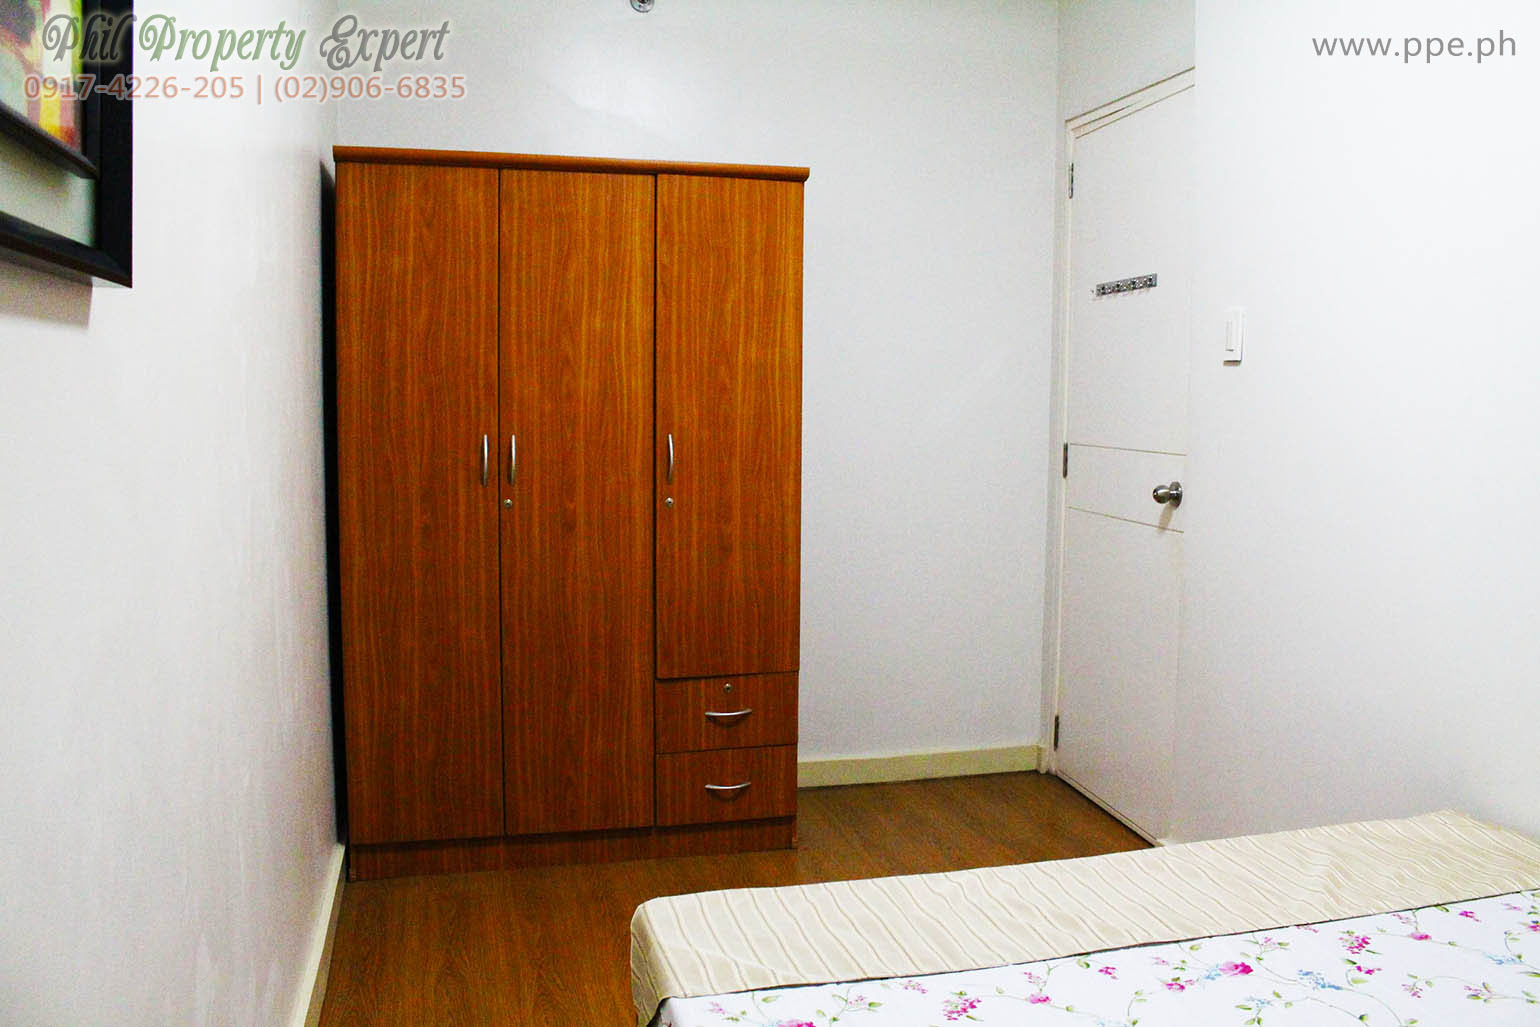 Affordable 2 Bedroom Condo For Rent in Mandaluyong City